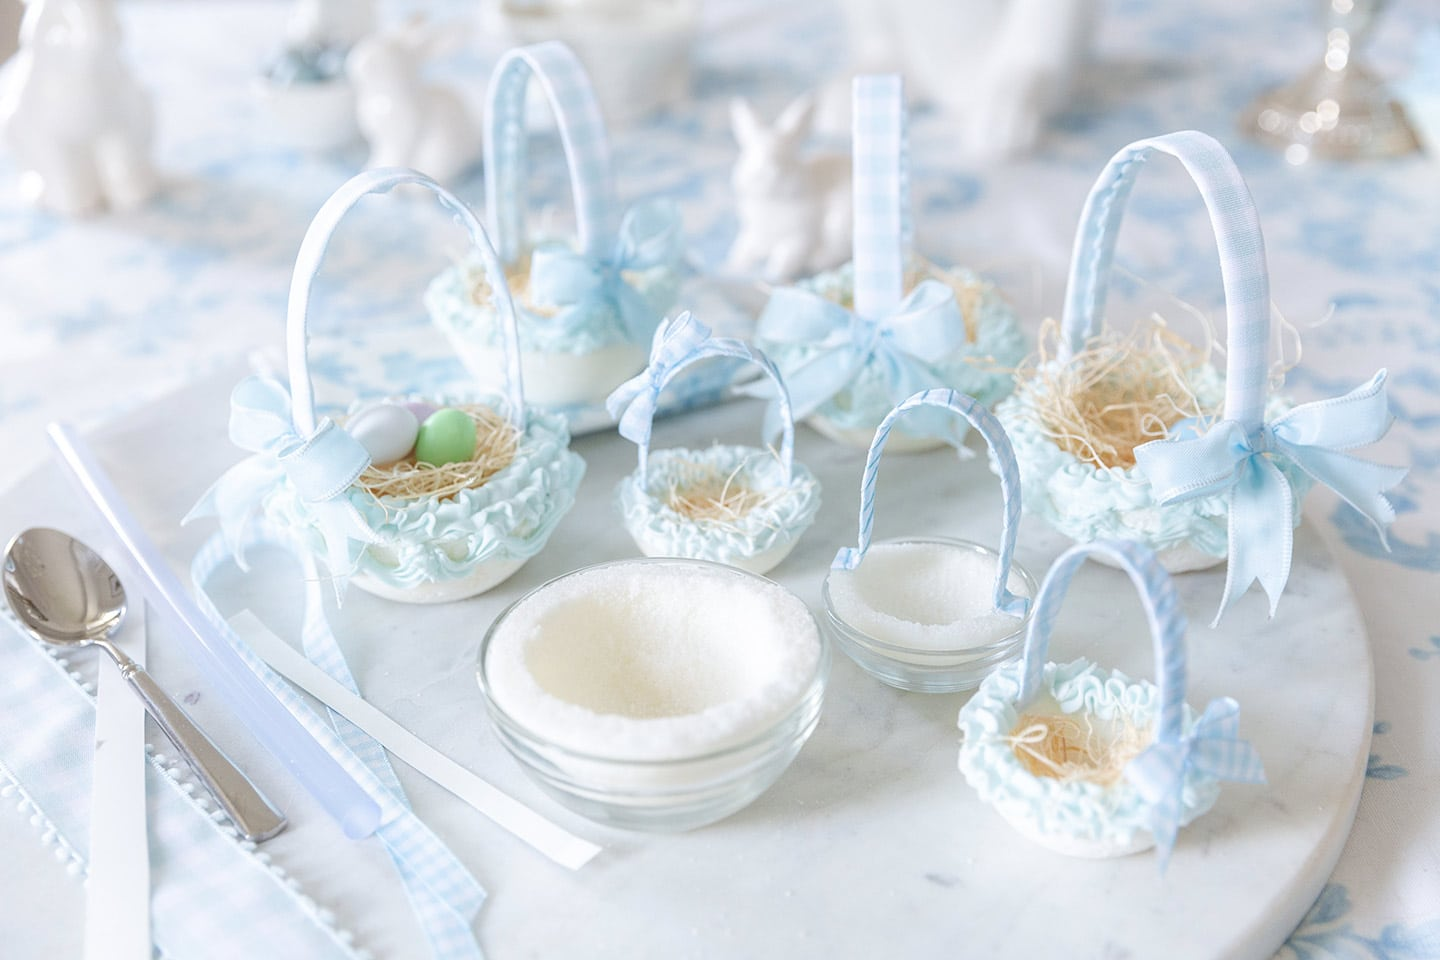 How to make Pressed Sugar Baskets for Easter